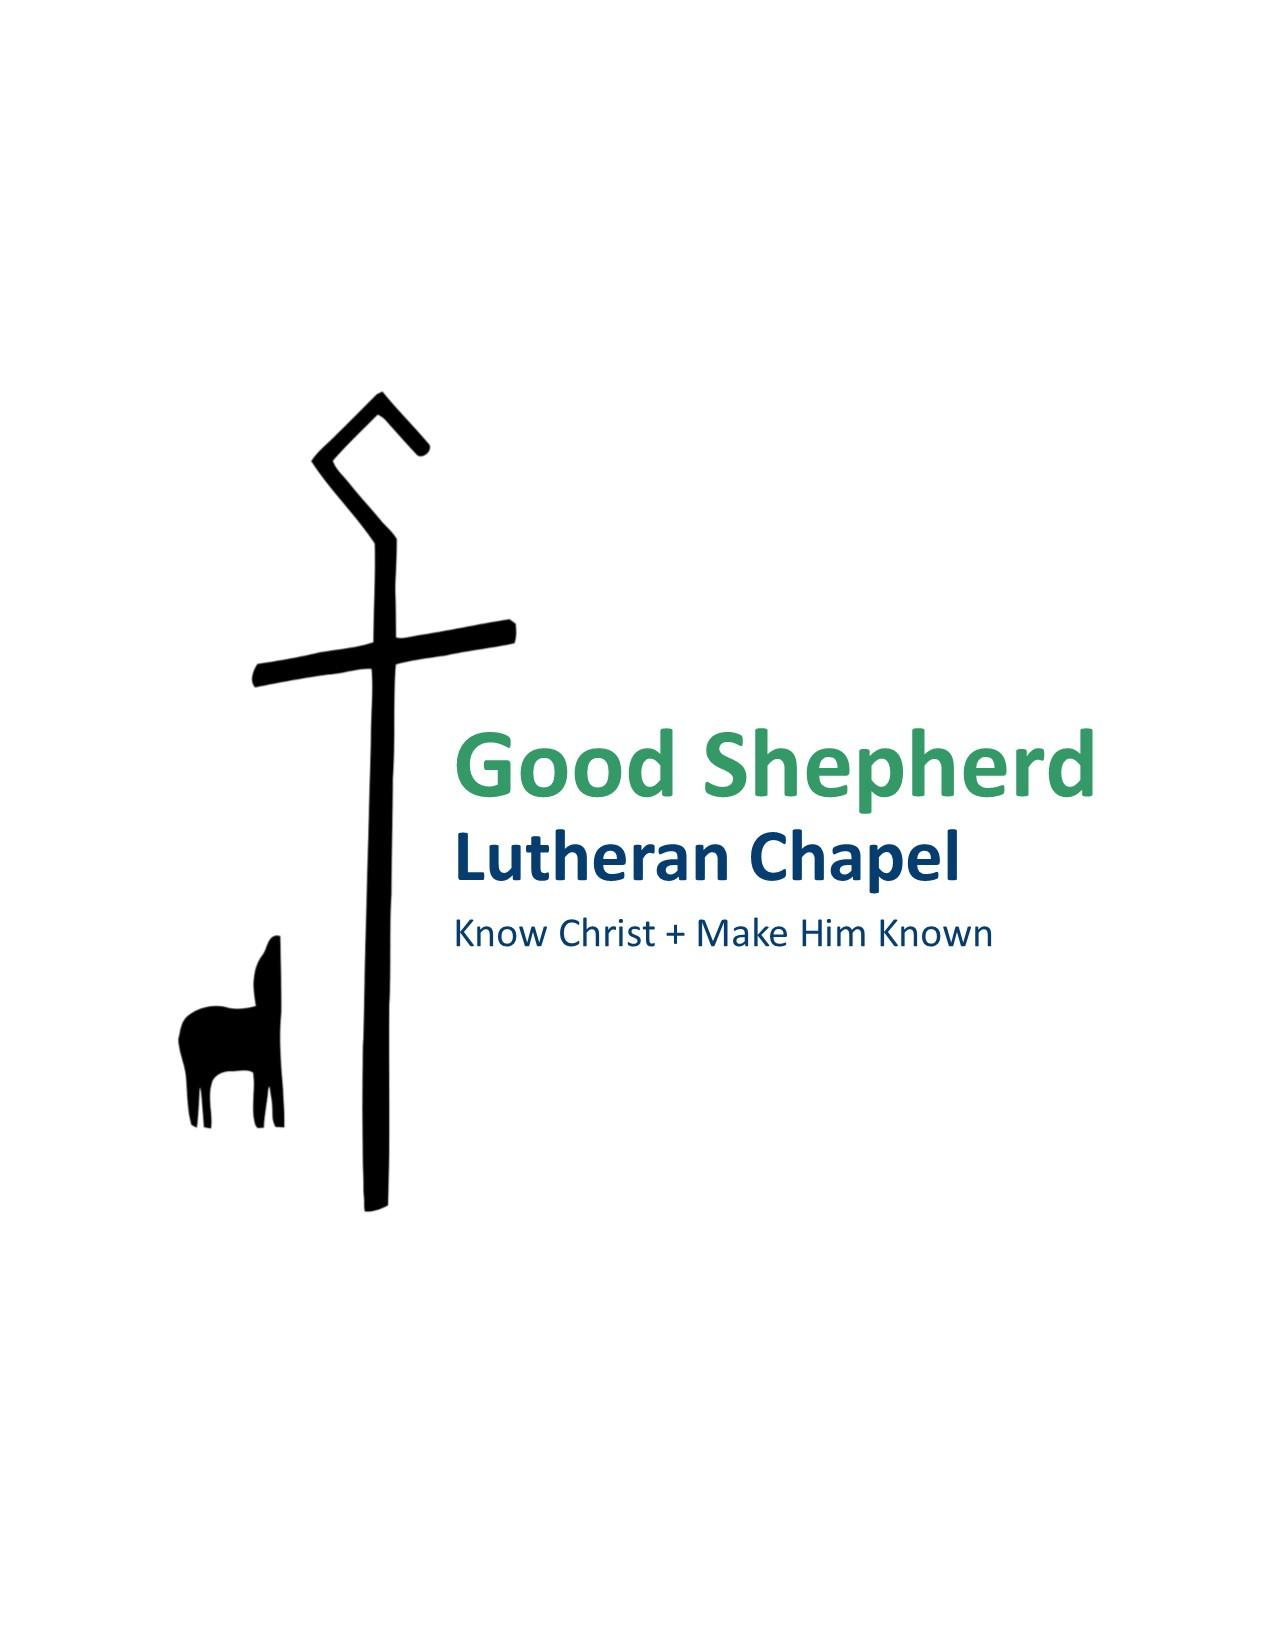 Good Shepherd Lutheran Chapel